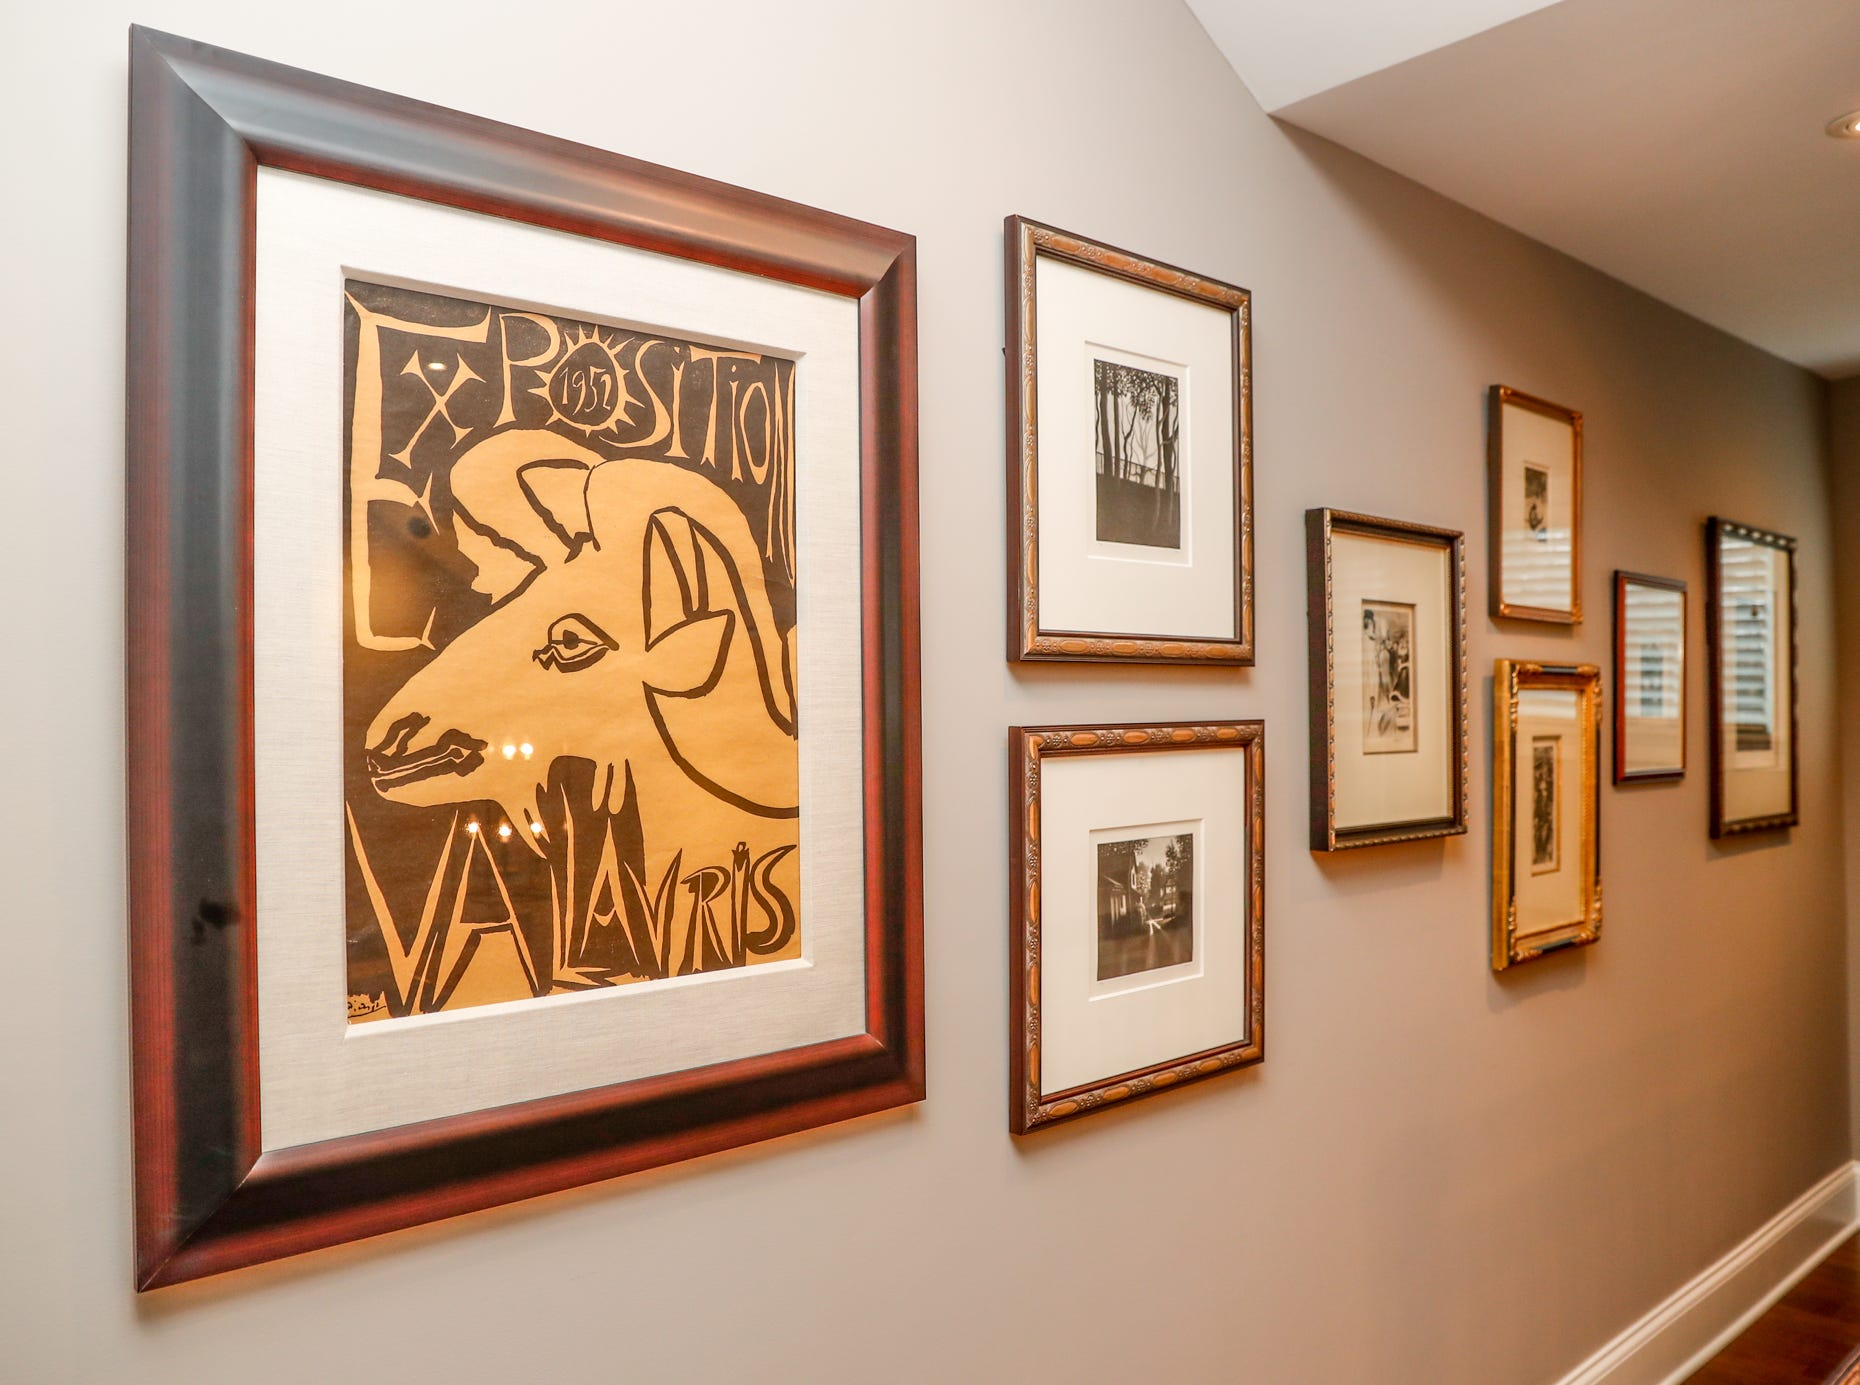 Fine art prints hang the home of Brad Sexauer during the Carmel Clay Historical Society Holiday Home Tour in Carmel Ind. on Saturday, Dec.1, 2018. The home features an array of fine art, and an open concept floor plan.